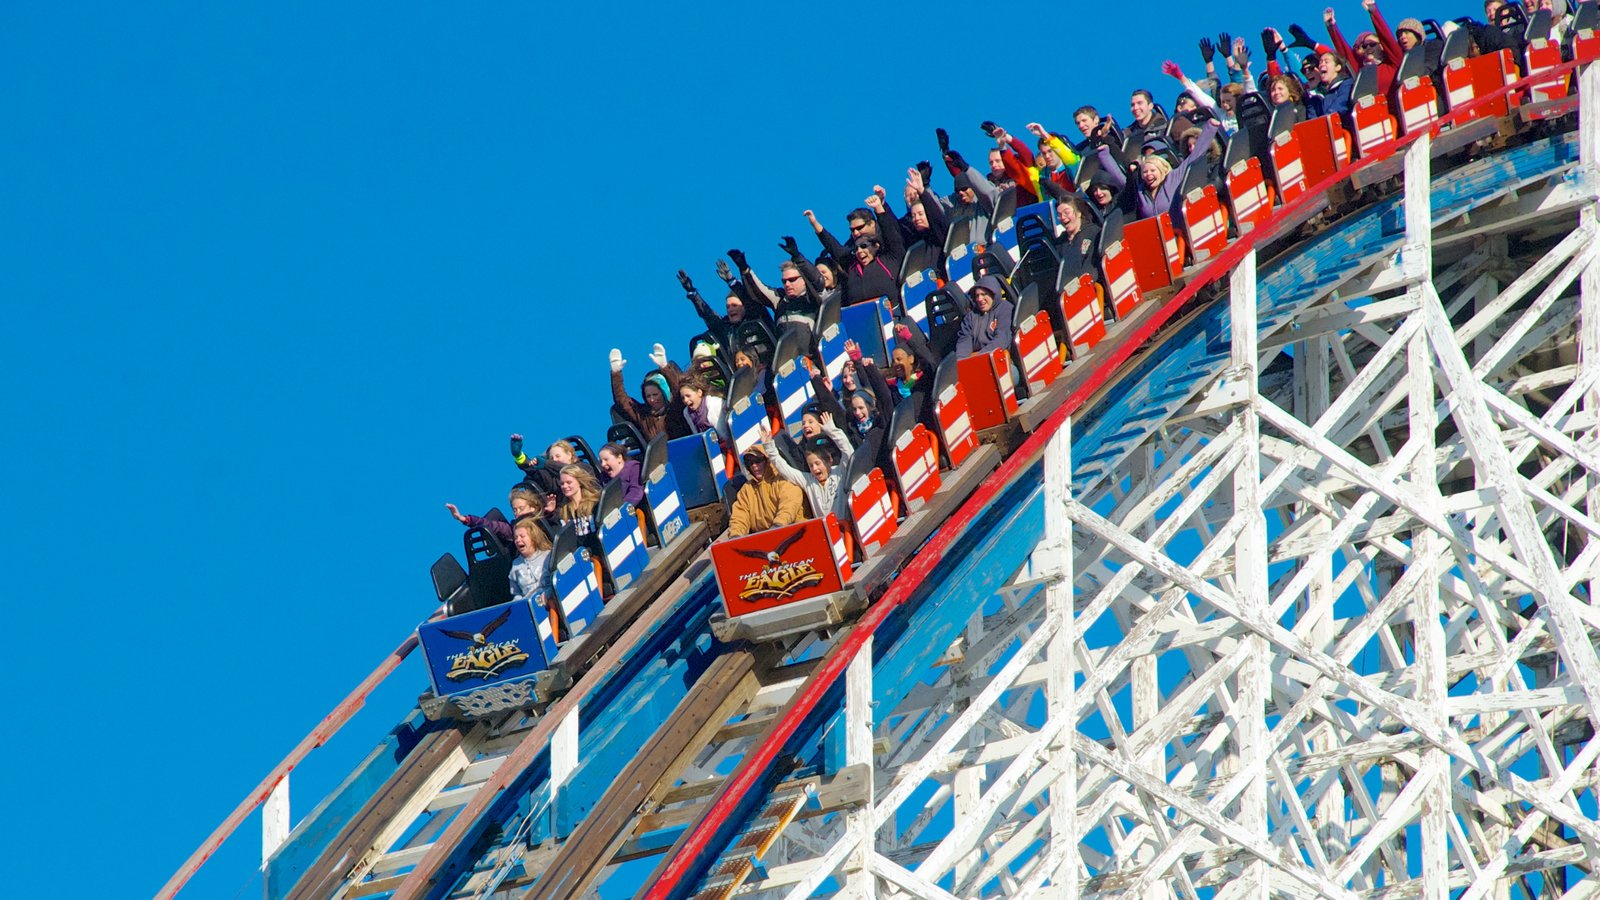 Six Flags Great America which includes rides as well as a large group of people